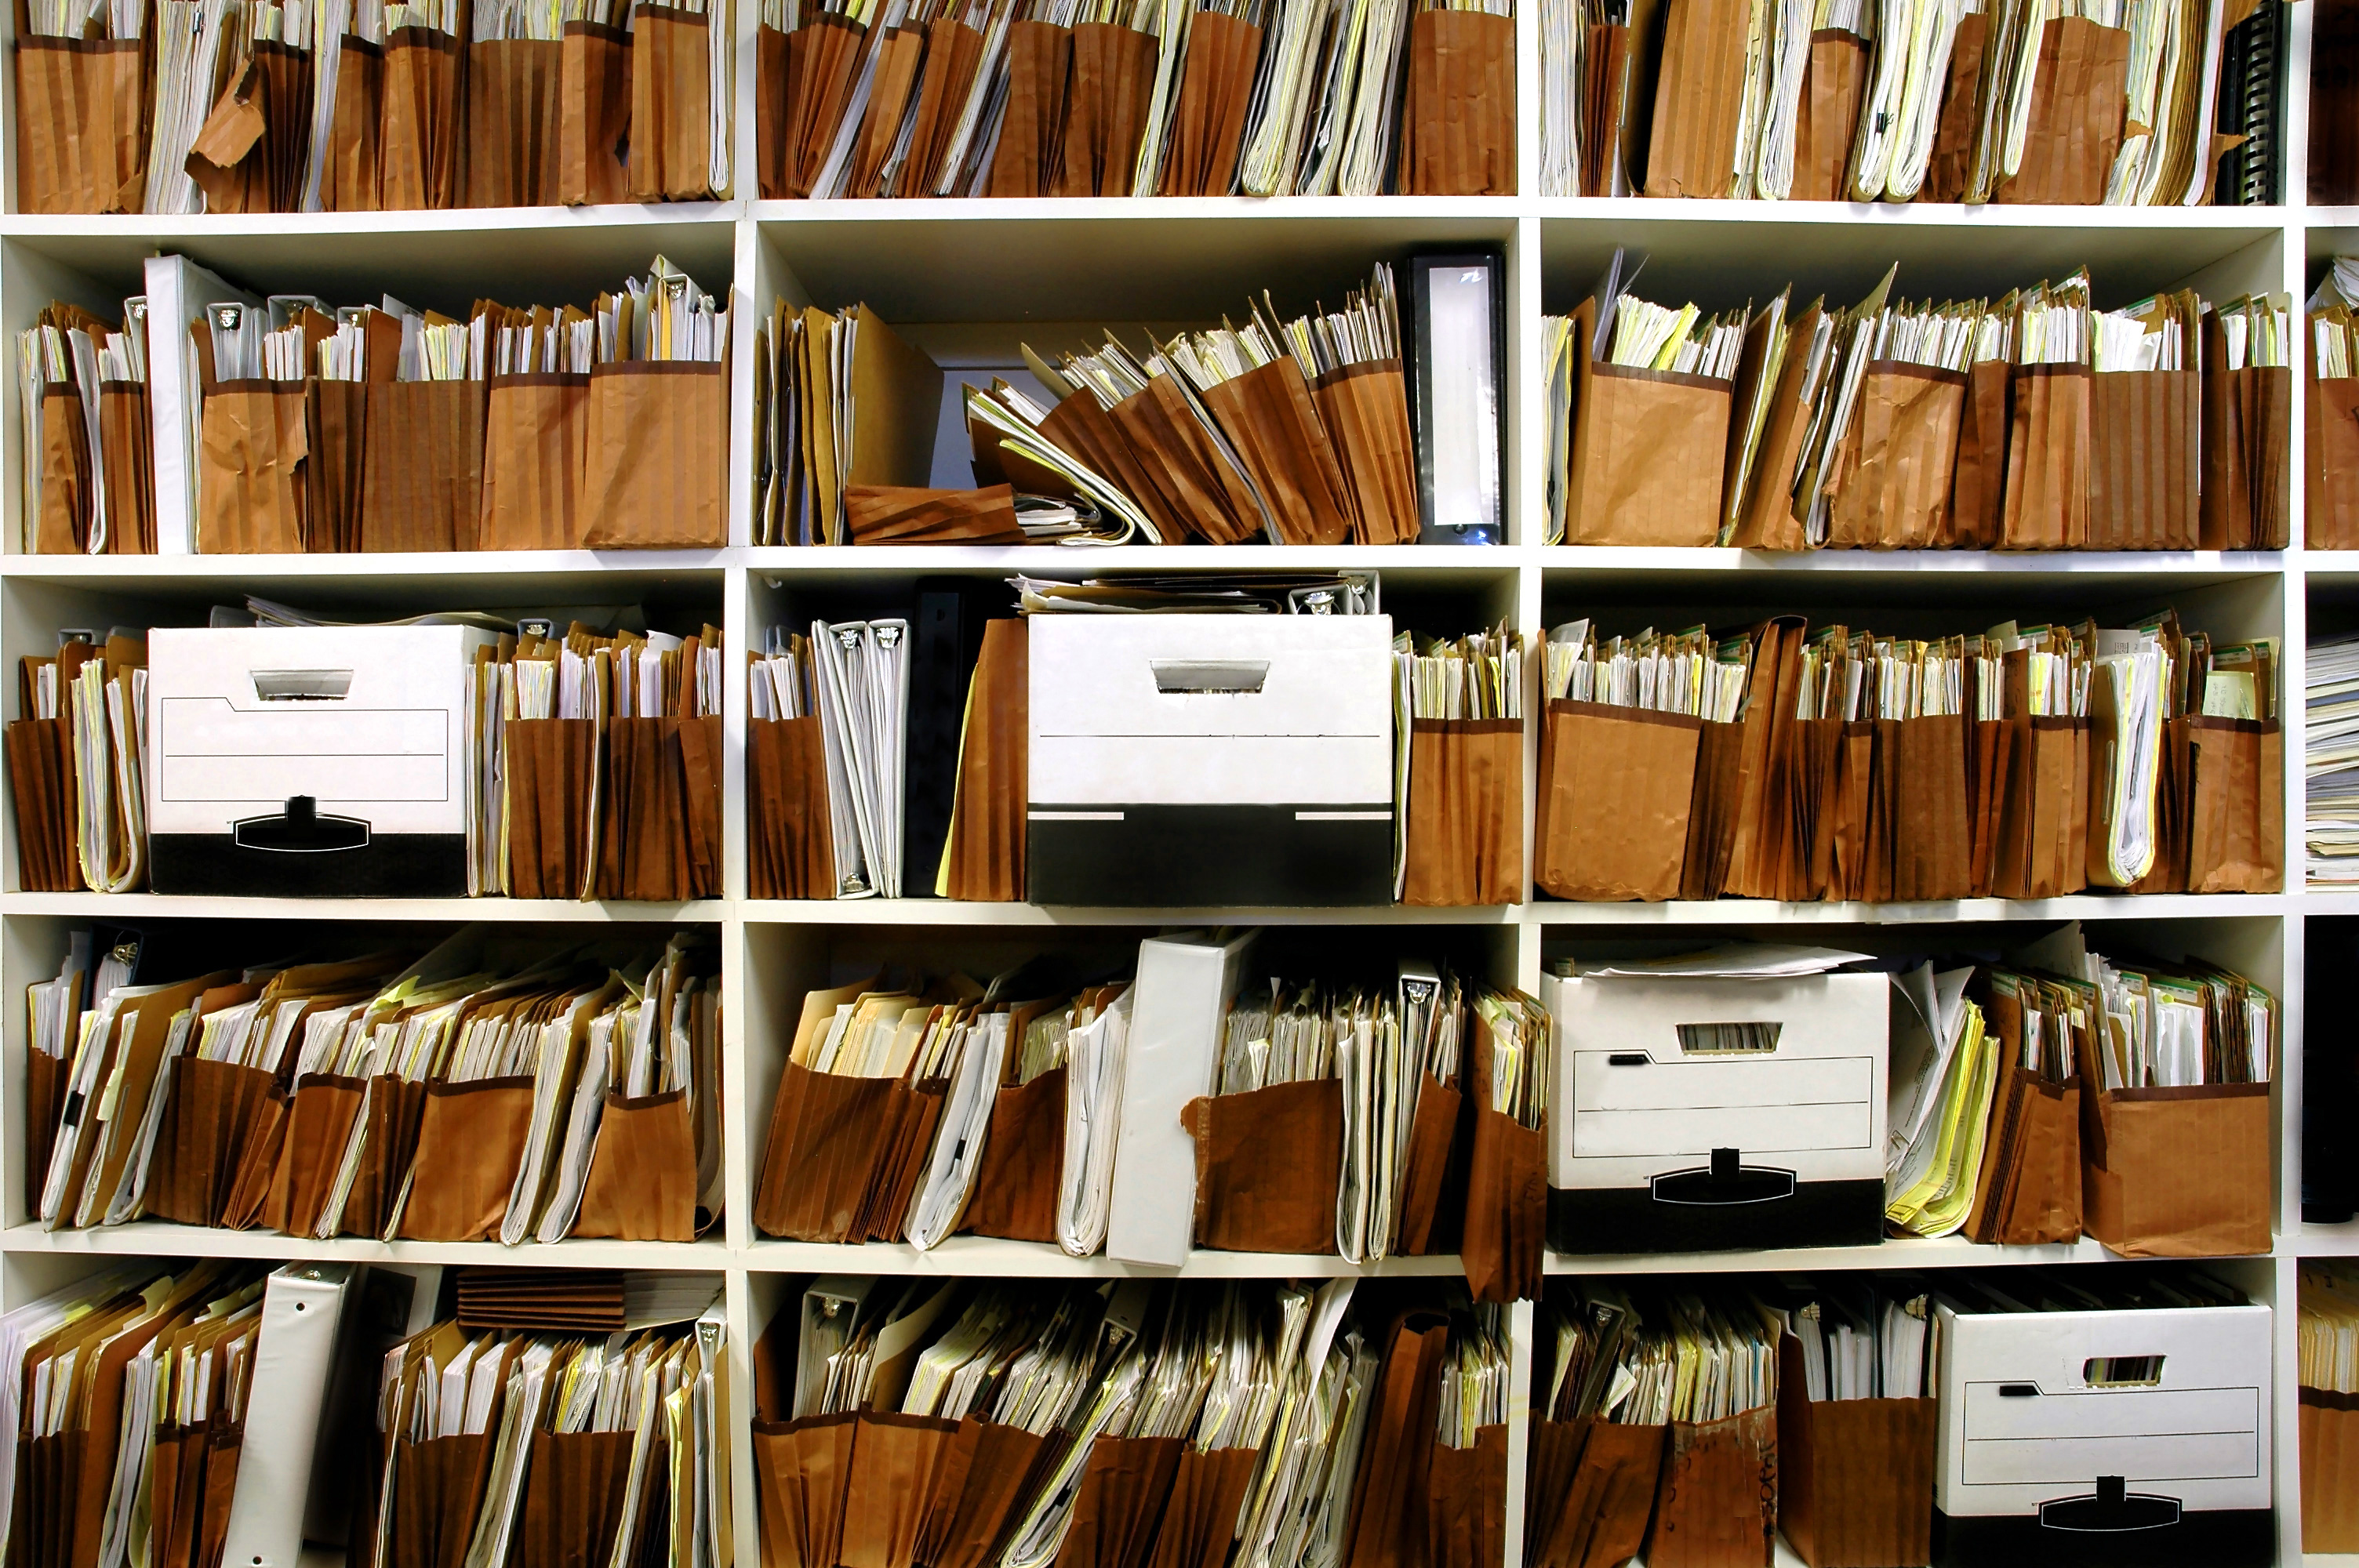 document generation and shelves of documents